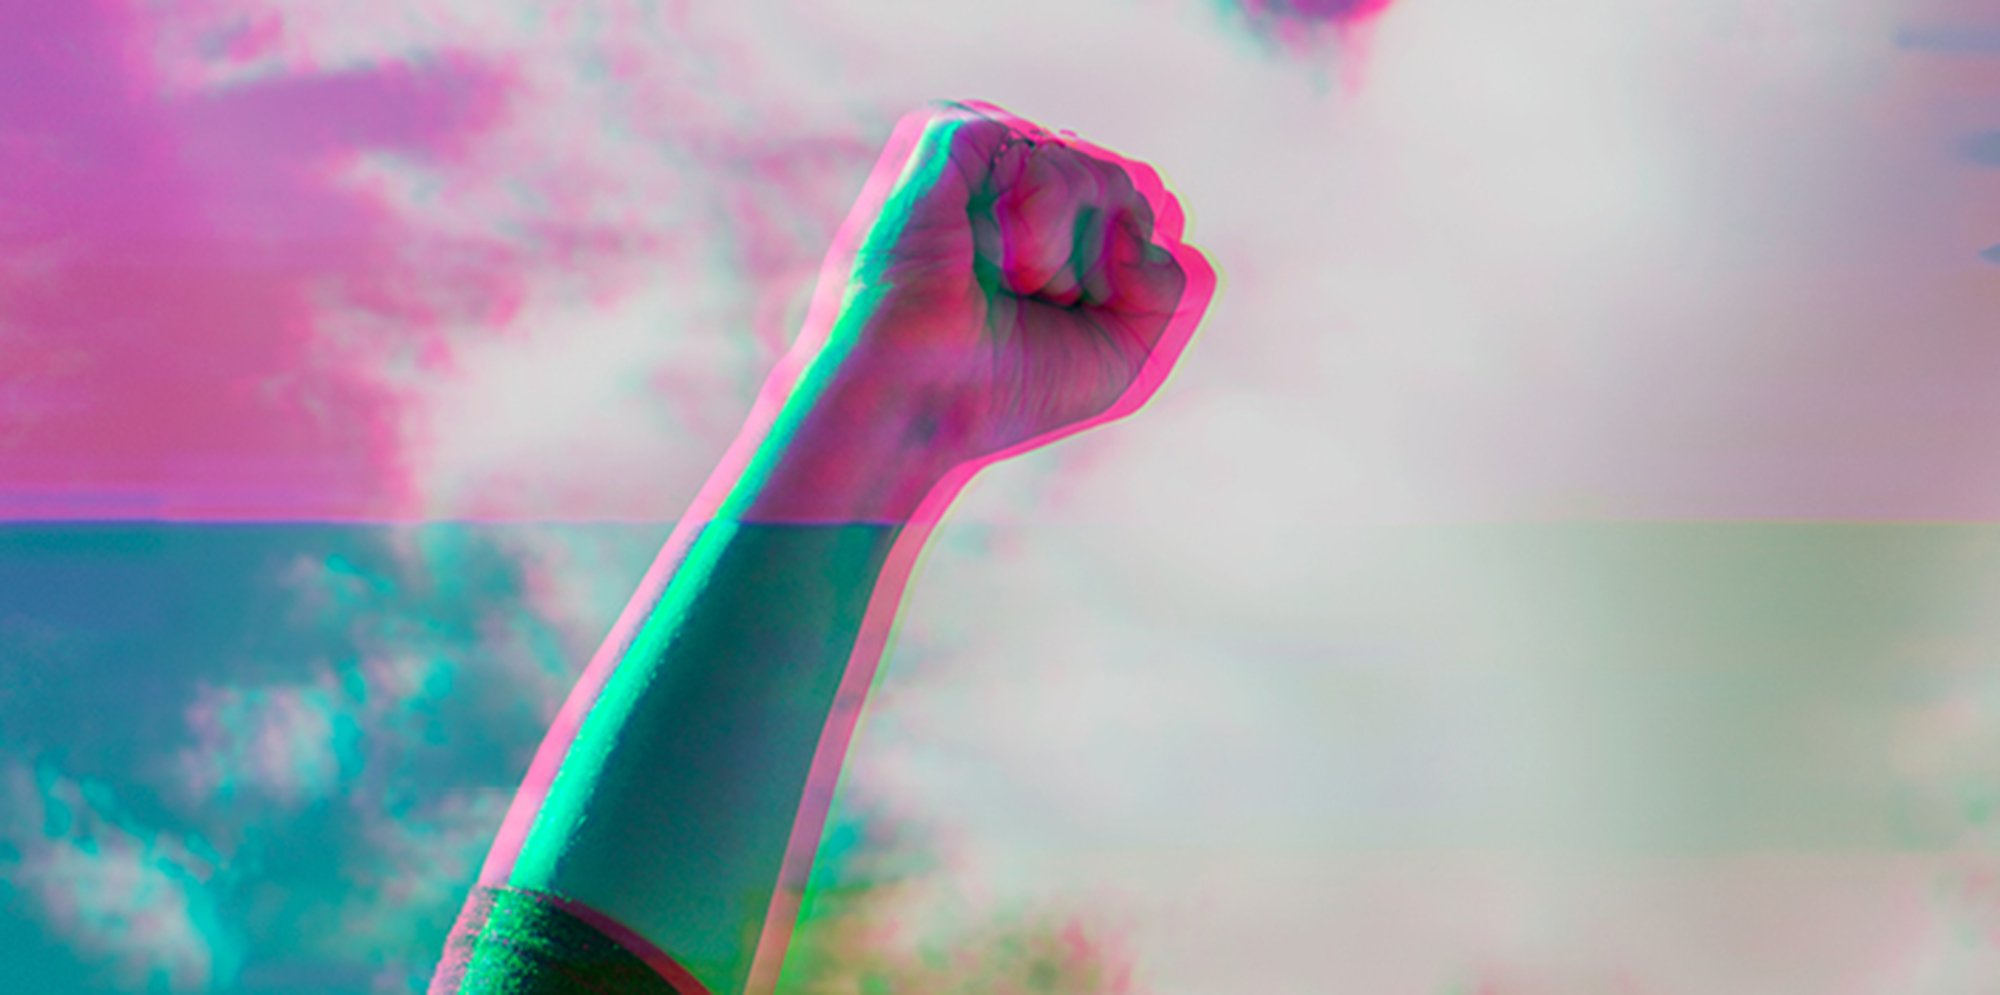 An image of a persons fist held high against a backdrop of the sky. The colours of the image are strange, as if it's a badly developed photograph.